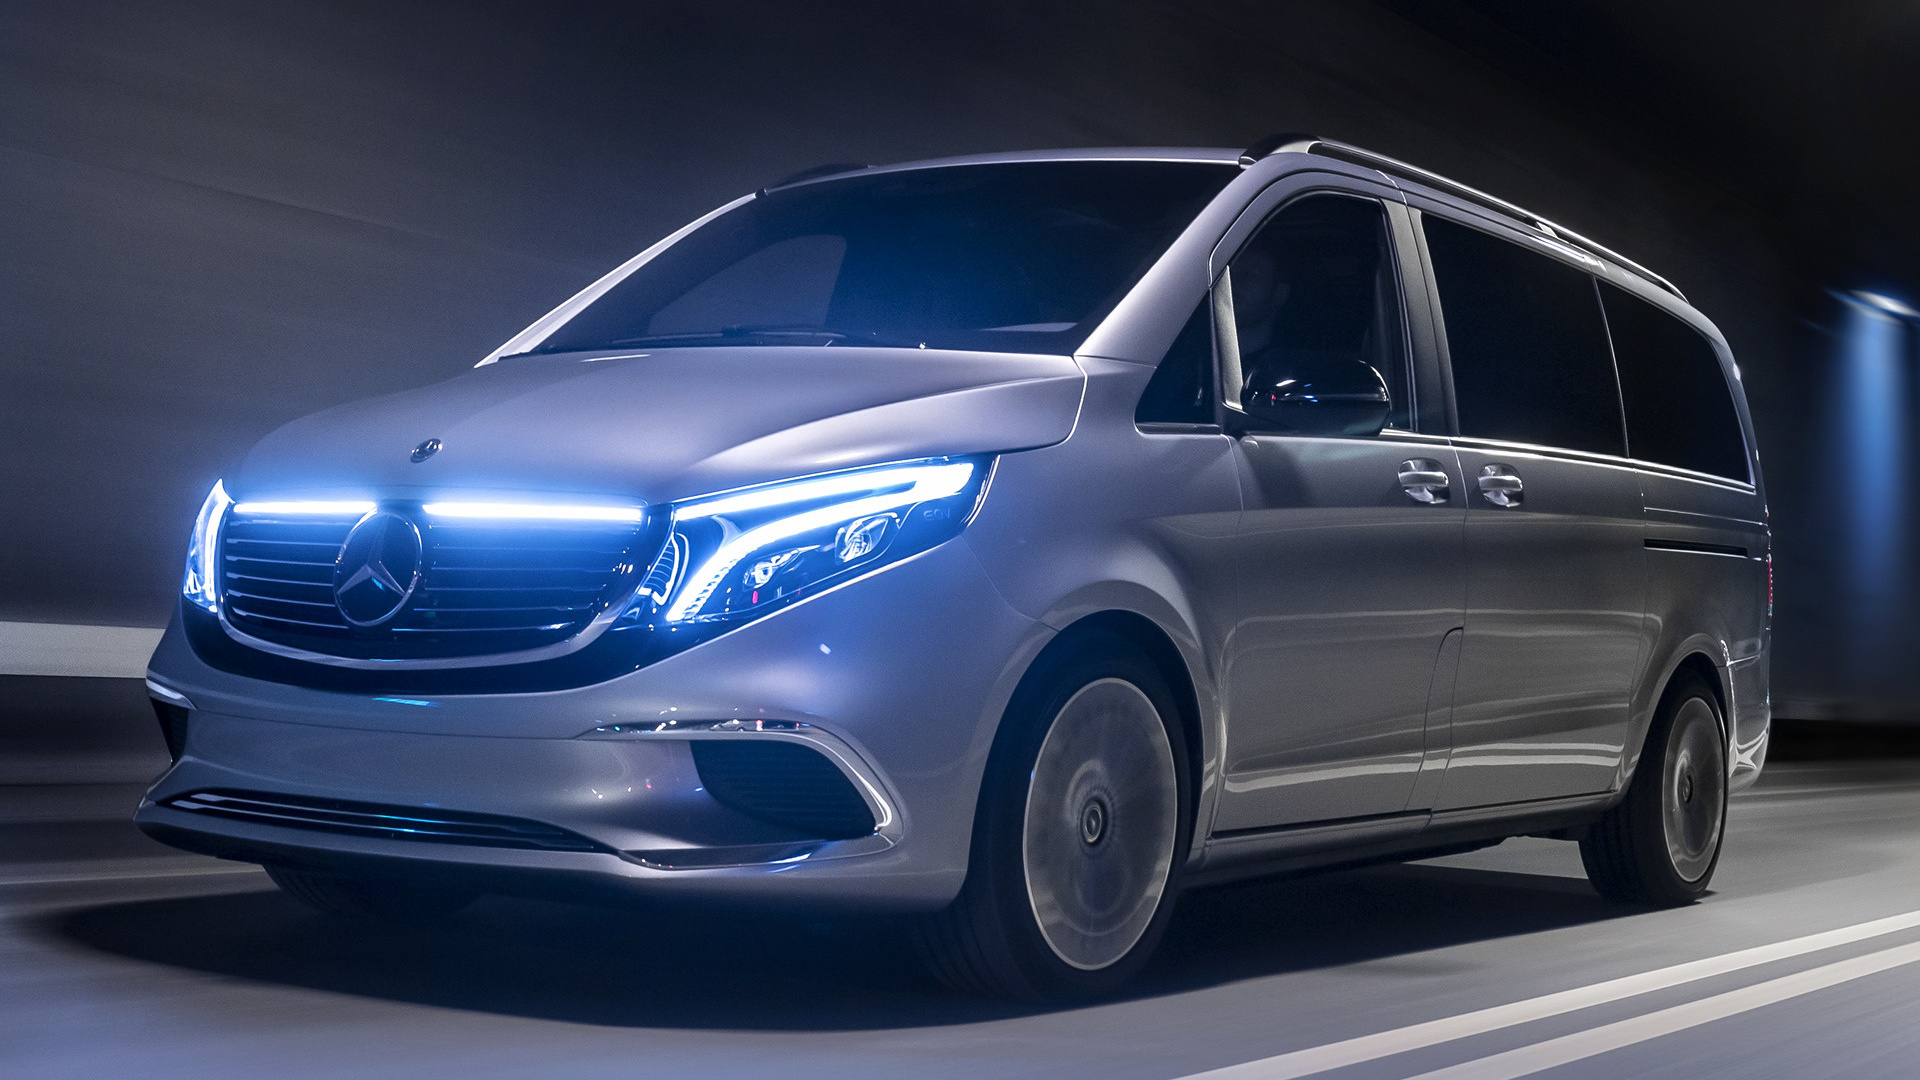 2019 Mercedes-Benz Concept EQV - Wallpapers and HD Images ...